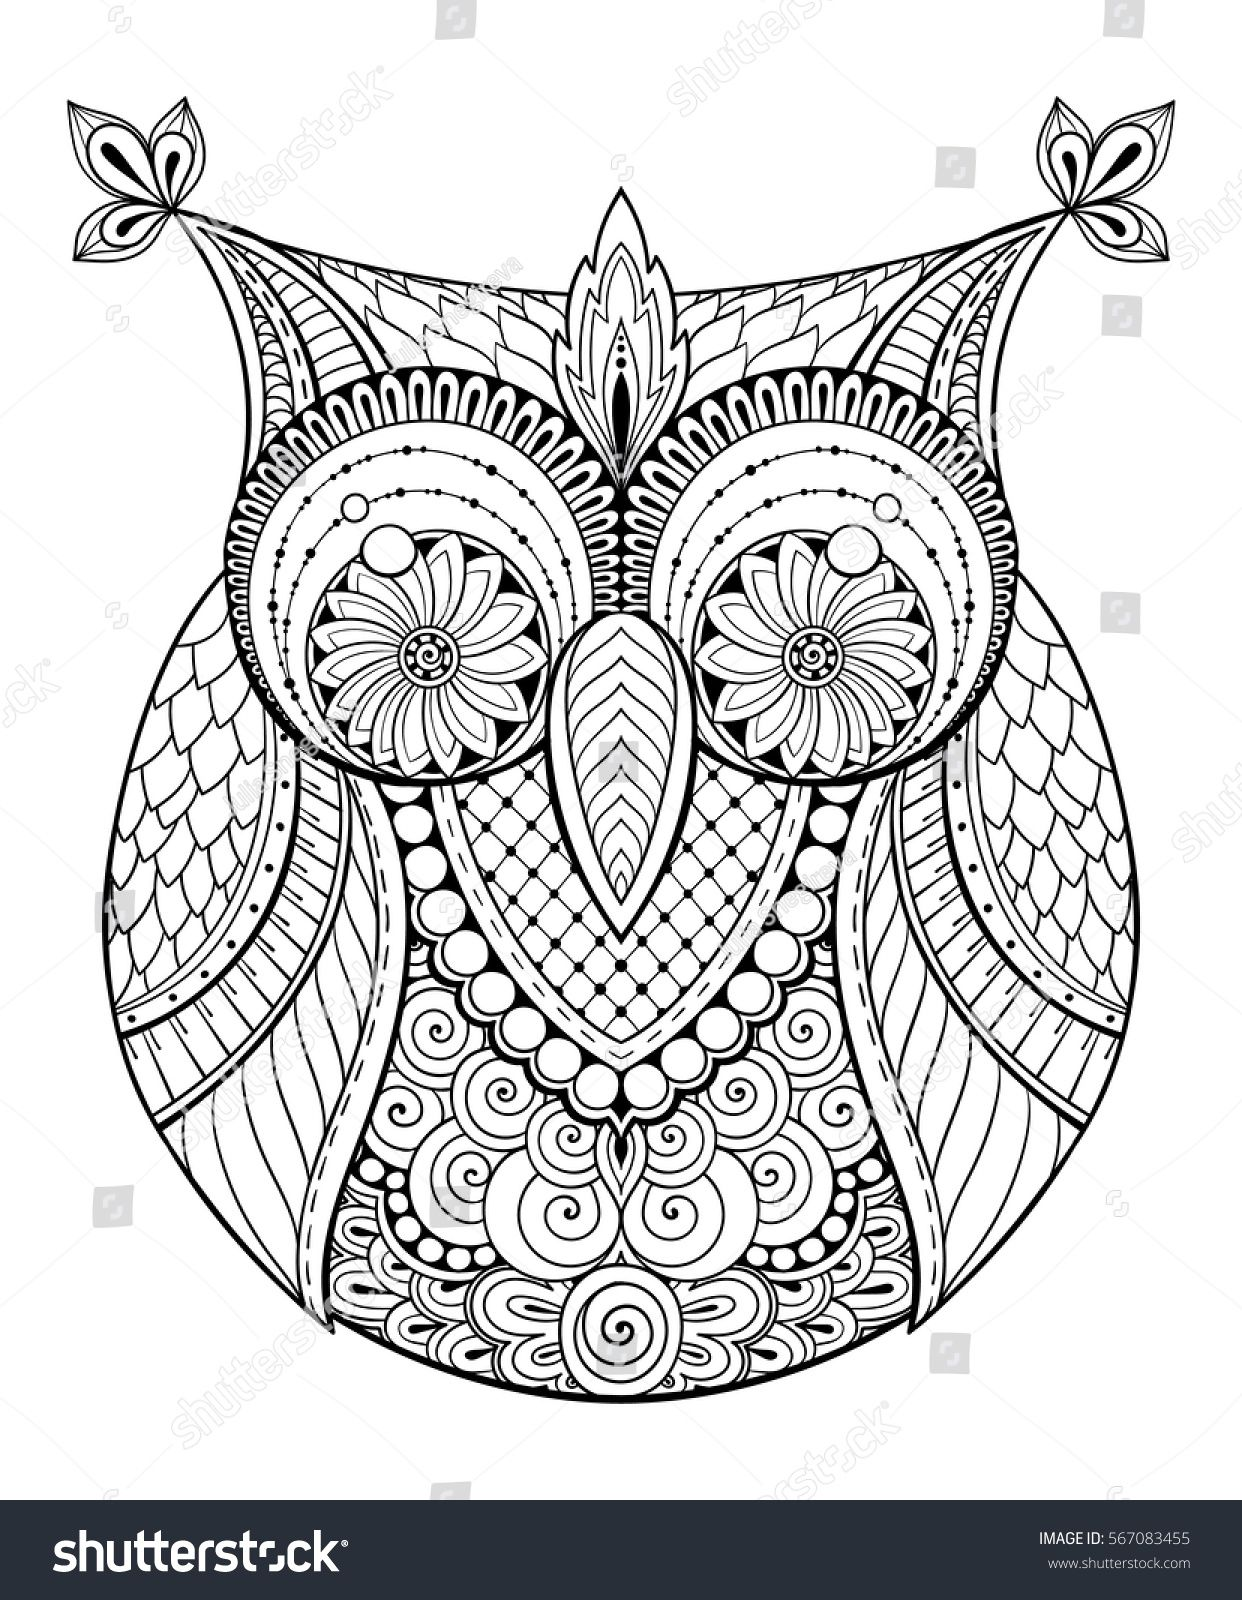 Birds theme. Owl black and white mandala with abstract ethnic aztec ...